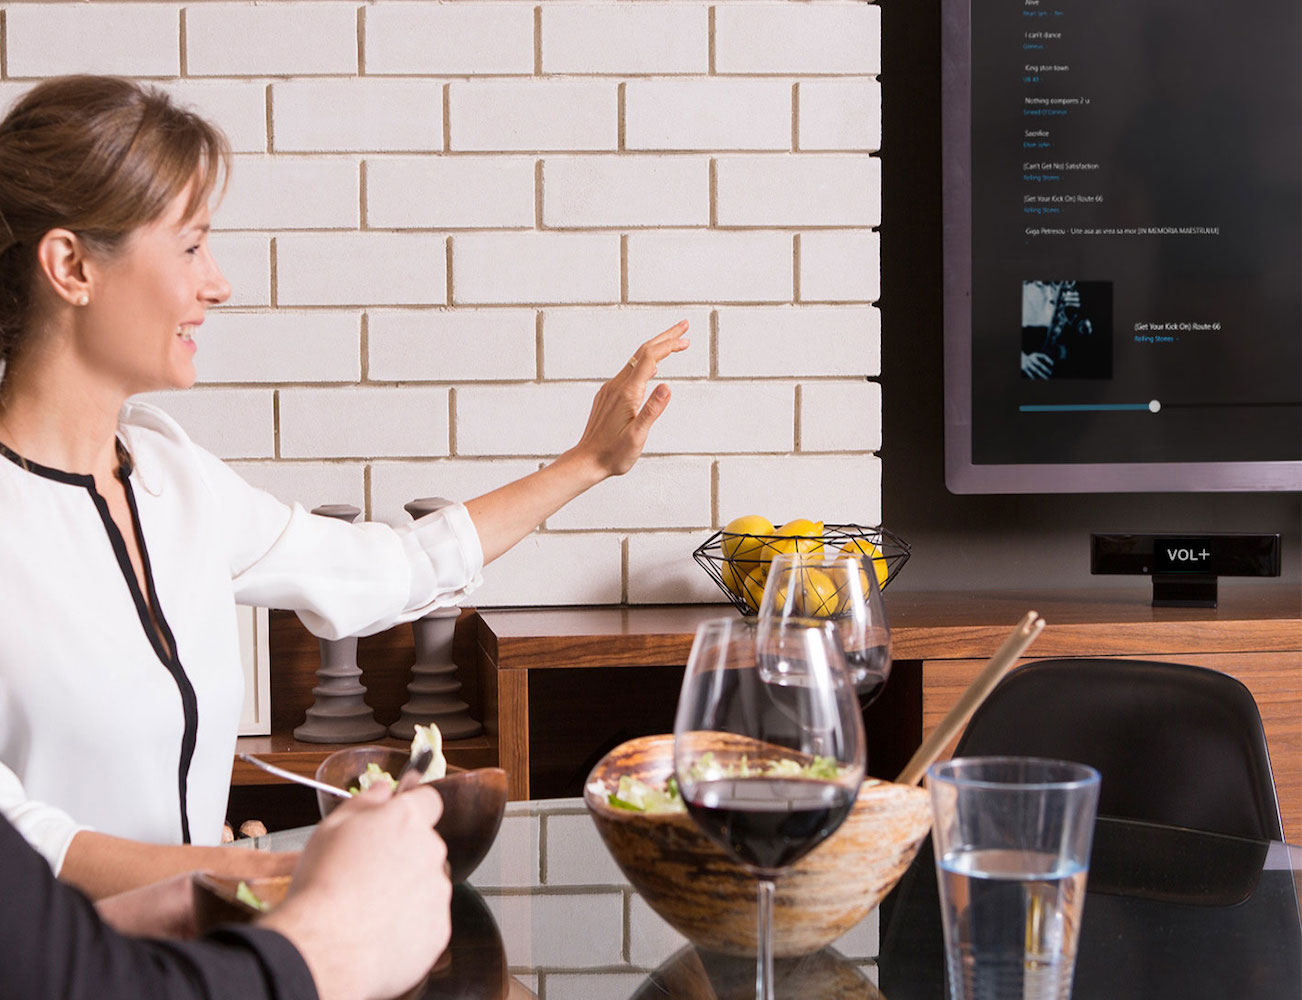 singlecue-Gesture-Control-for-Your-Home-Entertainment-Devices-04.jpg